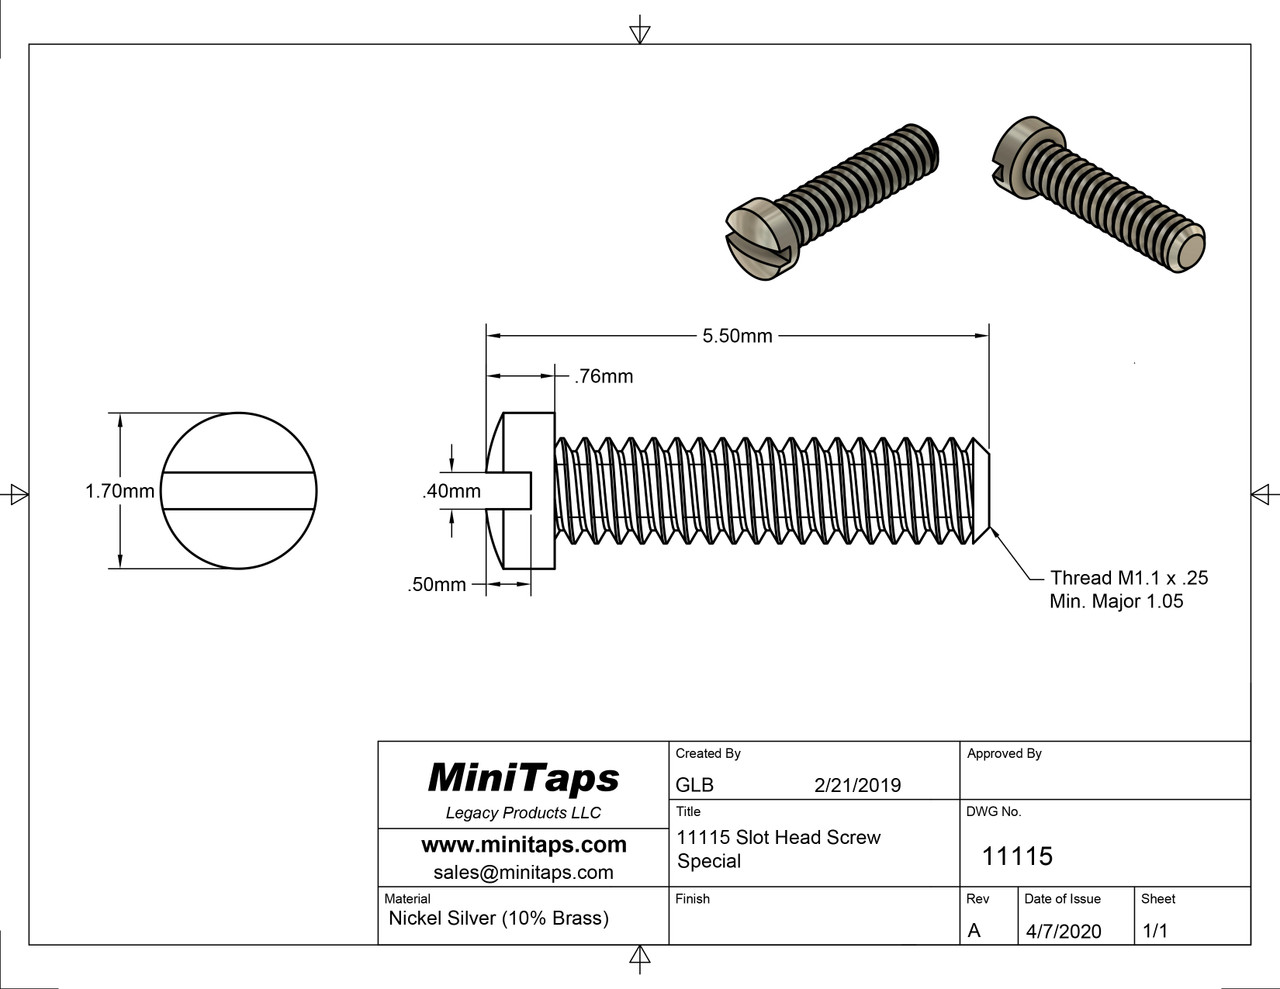 Machine Screw, Special  Thread M1.1, Overall Length (OAL) 5.5mm, Head Diameter 1.7mm,  Material Nickel Silver, a copper alloy superior to brass  Finish Color Silver    Price is for 100 count package with bulk pricing available. Please contact sales@minitaps.com for bulk pricing pricing or any additional questions or information.